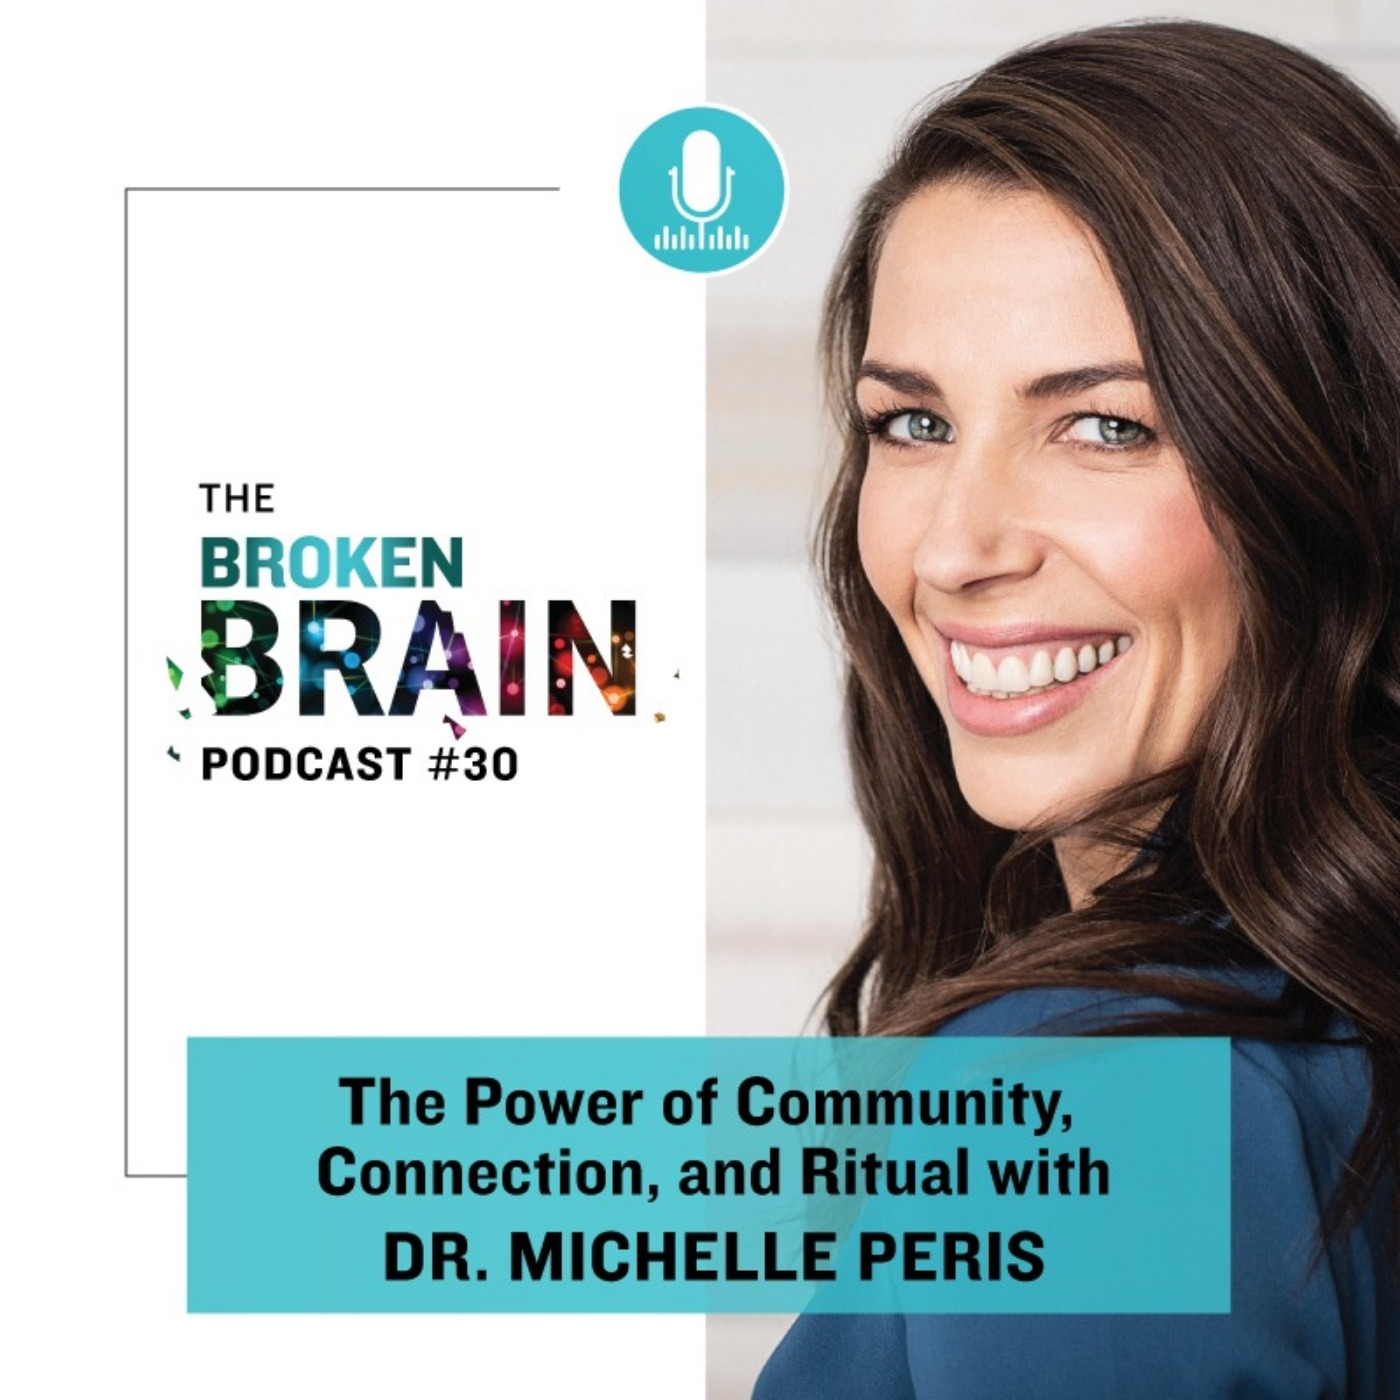 #30: The Power of Community, Connection, and Ritual with Dr. Michelle Peris